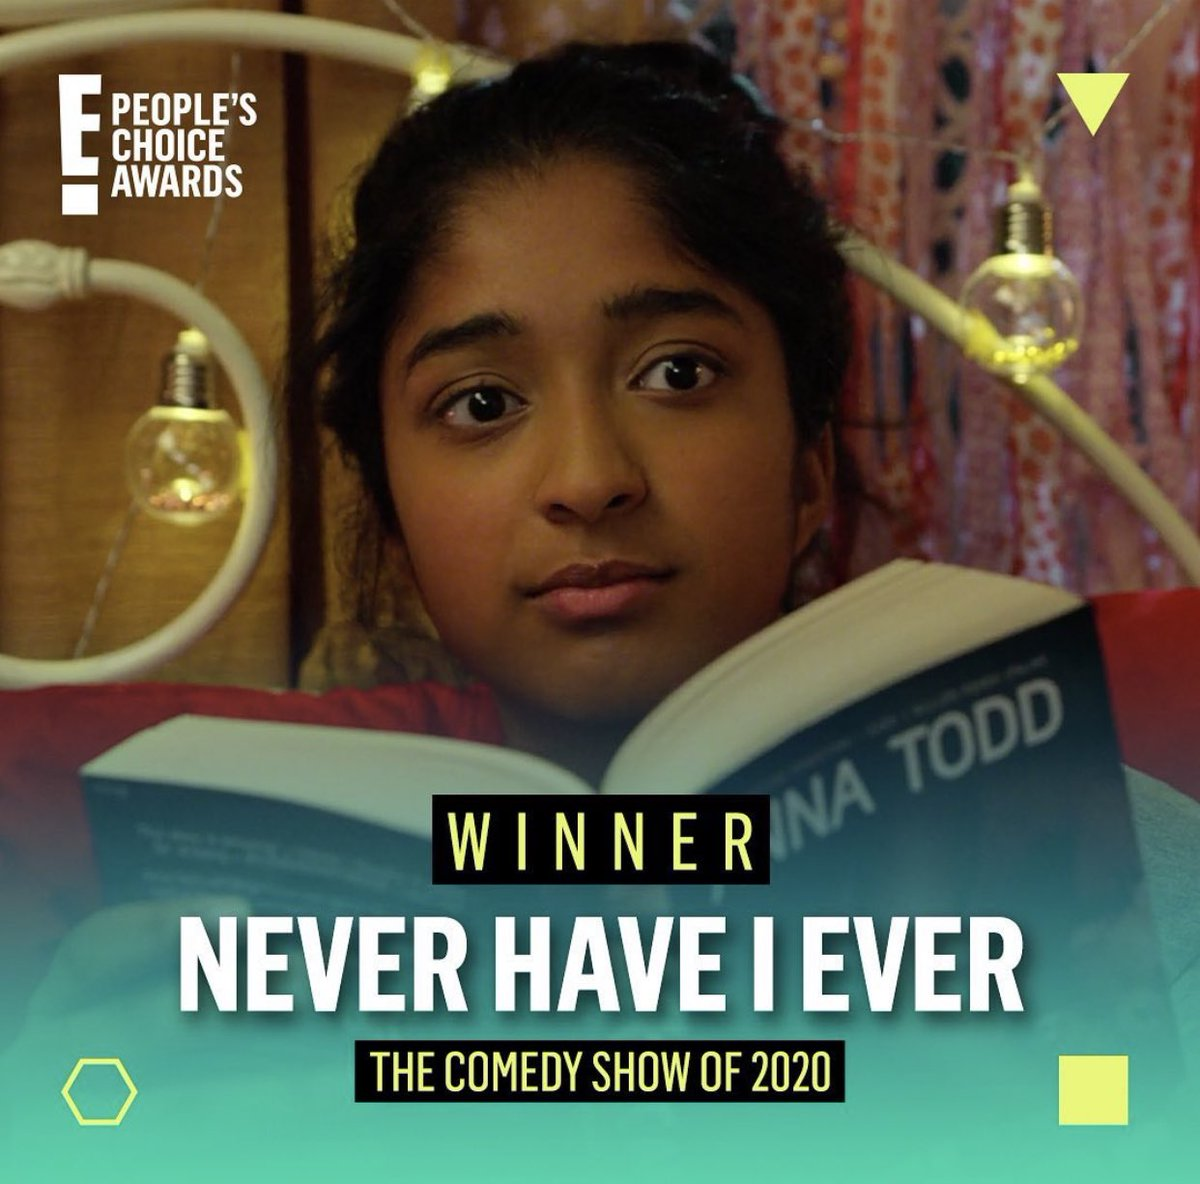 #NeverHaveIEver won @peopleschoice Comedy Show & we are so grateful! It means so much bc it's coming from the fans. Thanks to @netflix, @UniversalTV & our amazing cast & crew! Now headed to sleep so I can be go on set tomorrow for season 2!! 🎥🎉 @loulielang @neverhaveiever #PCAs